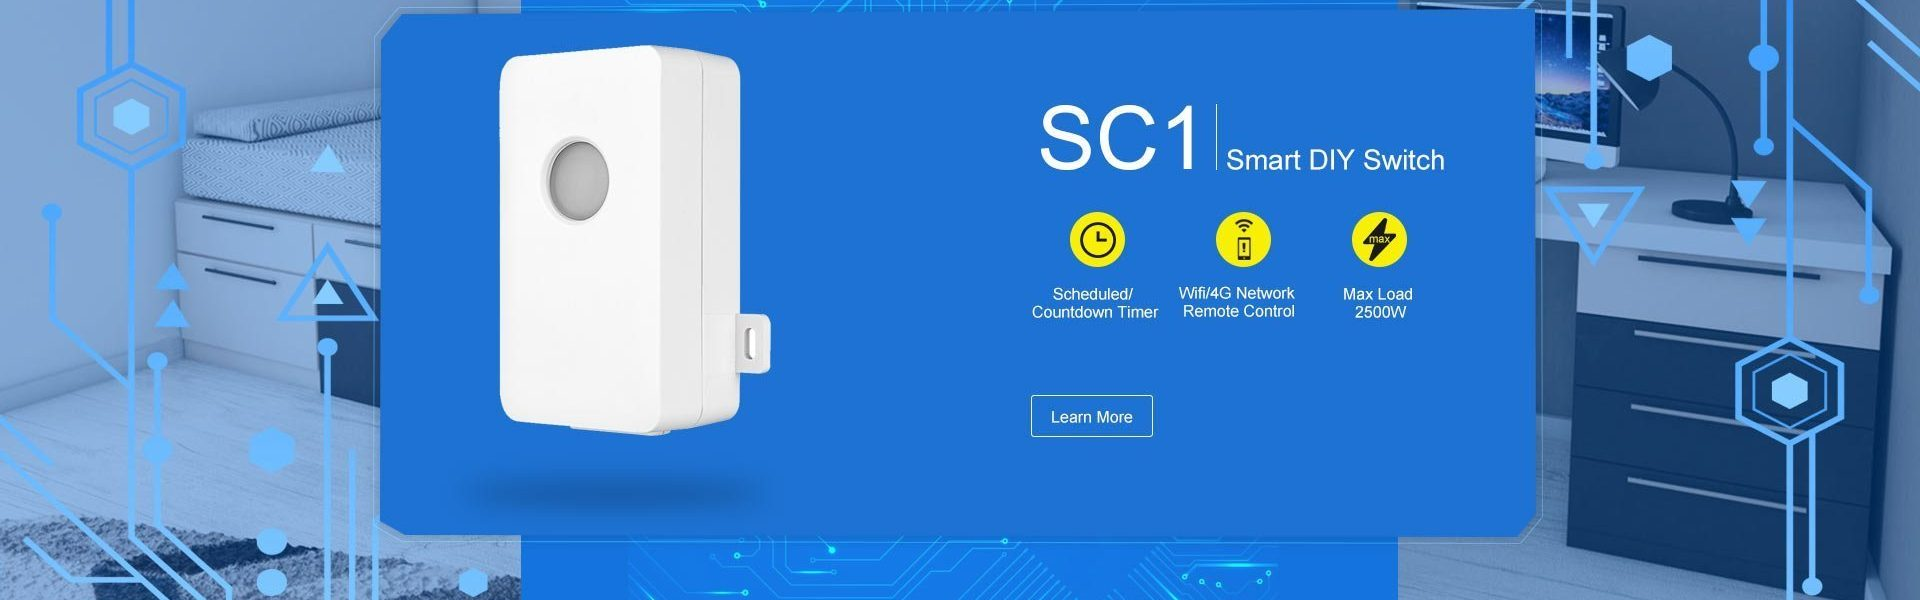 Broadlink SC1 best smart WiFi power switch 10 ampere